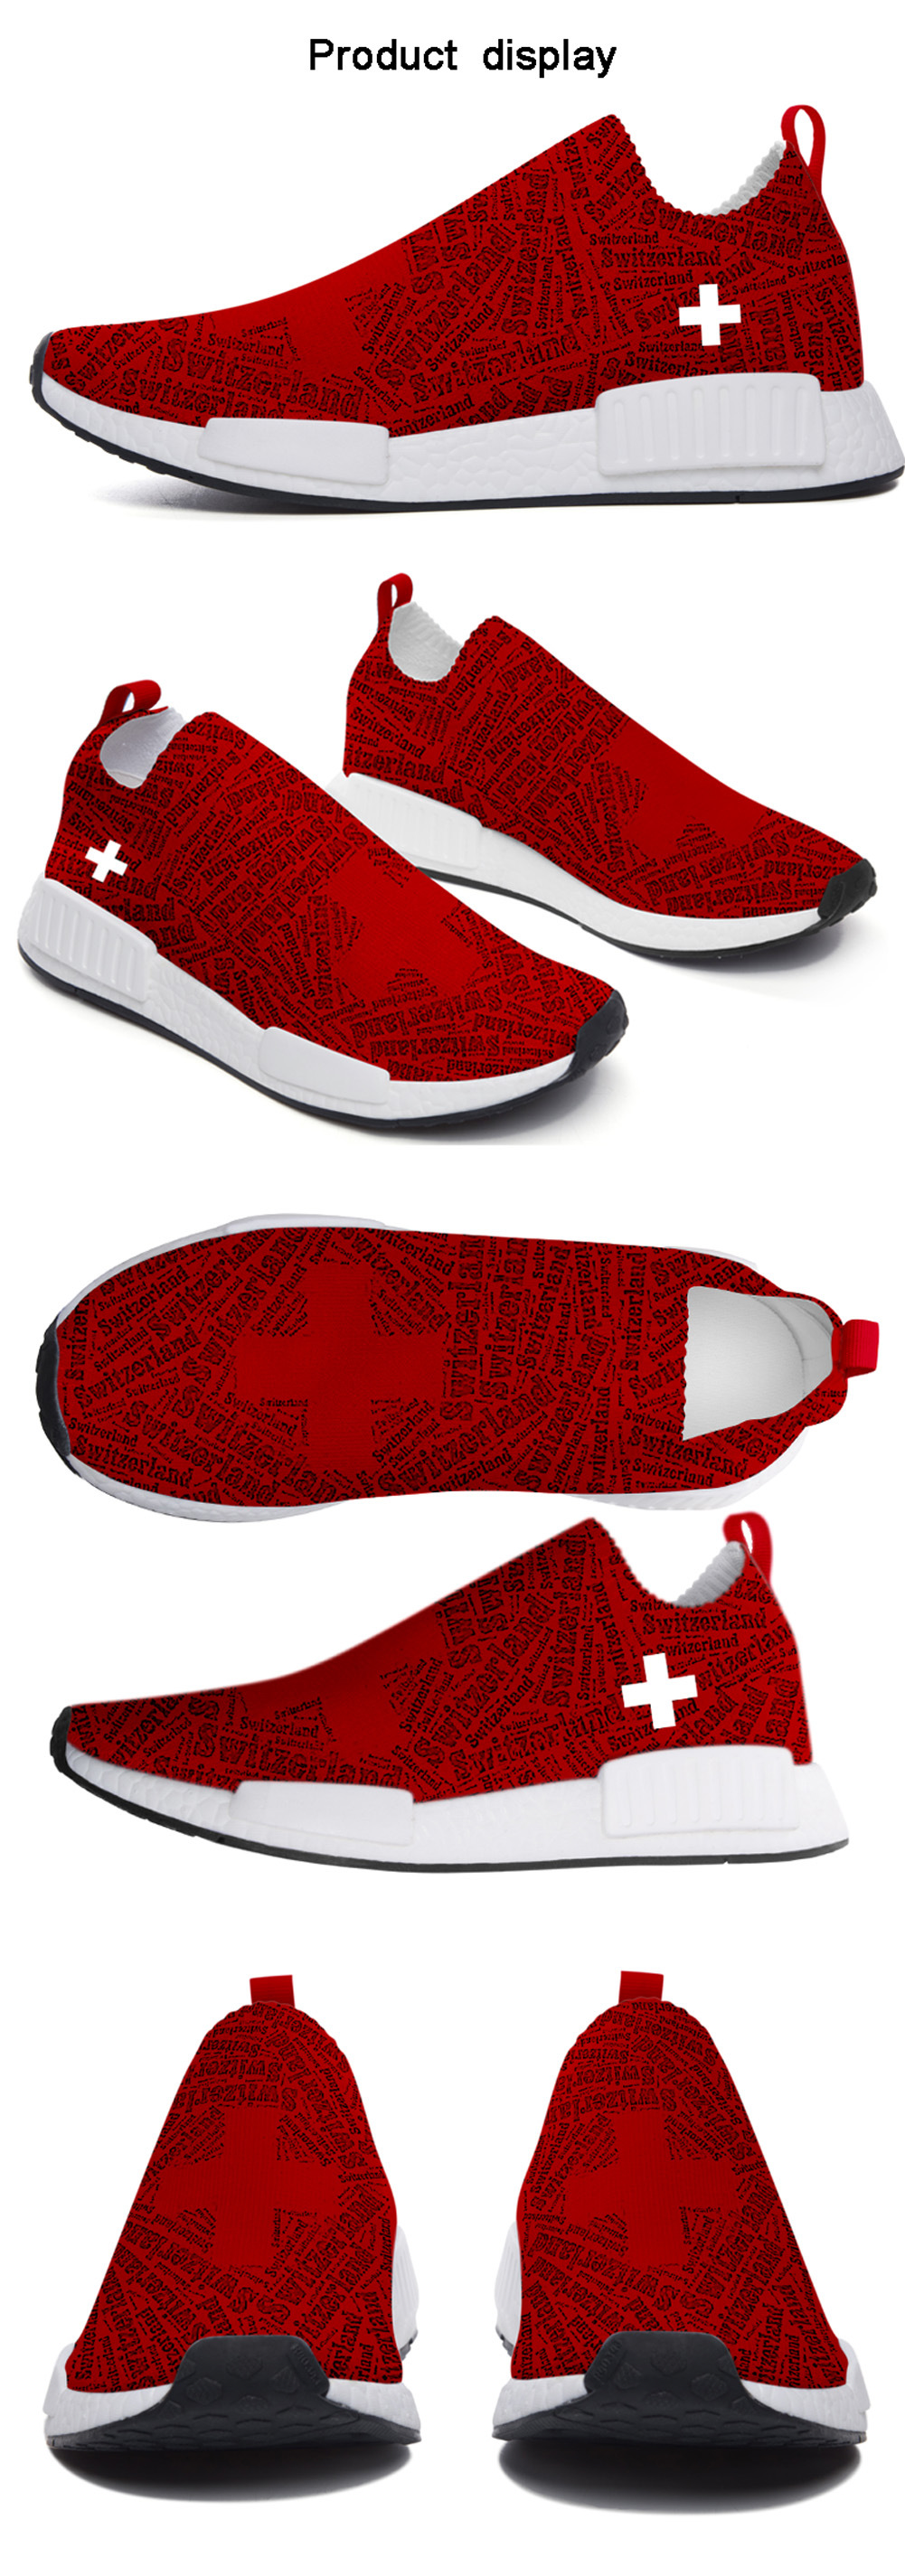 46be7f678f Designed for fashion men, stylish and personalized. Full canvas upper,  round toe. Metal eyelets for a ...